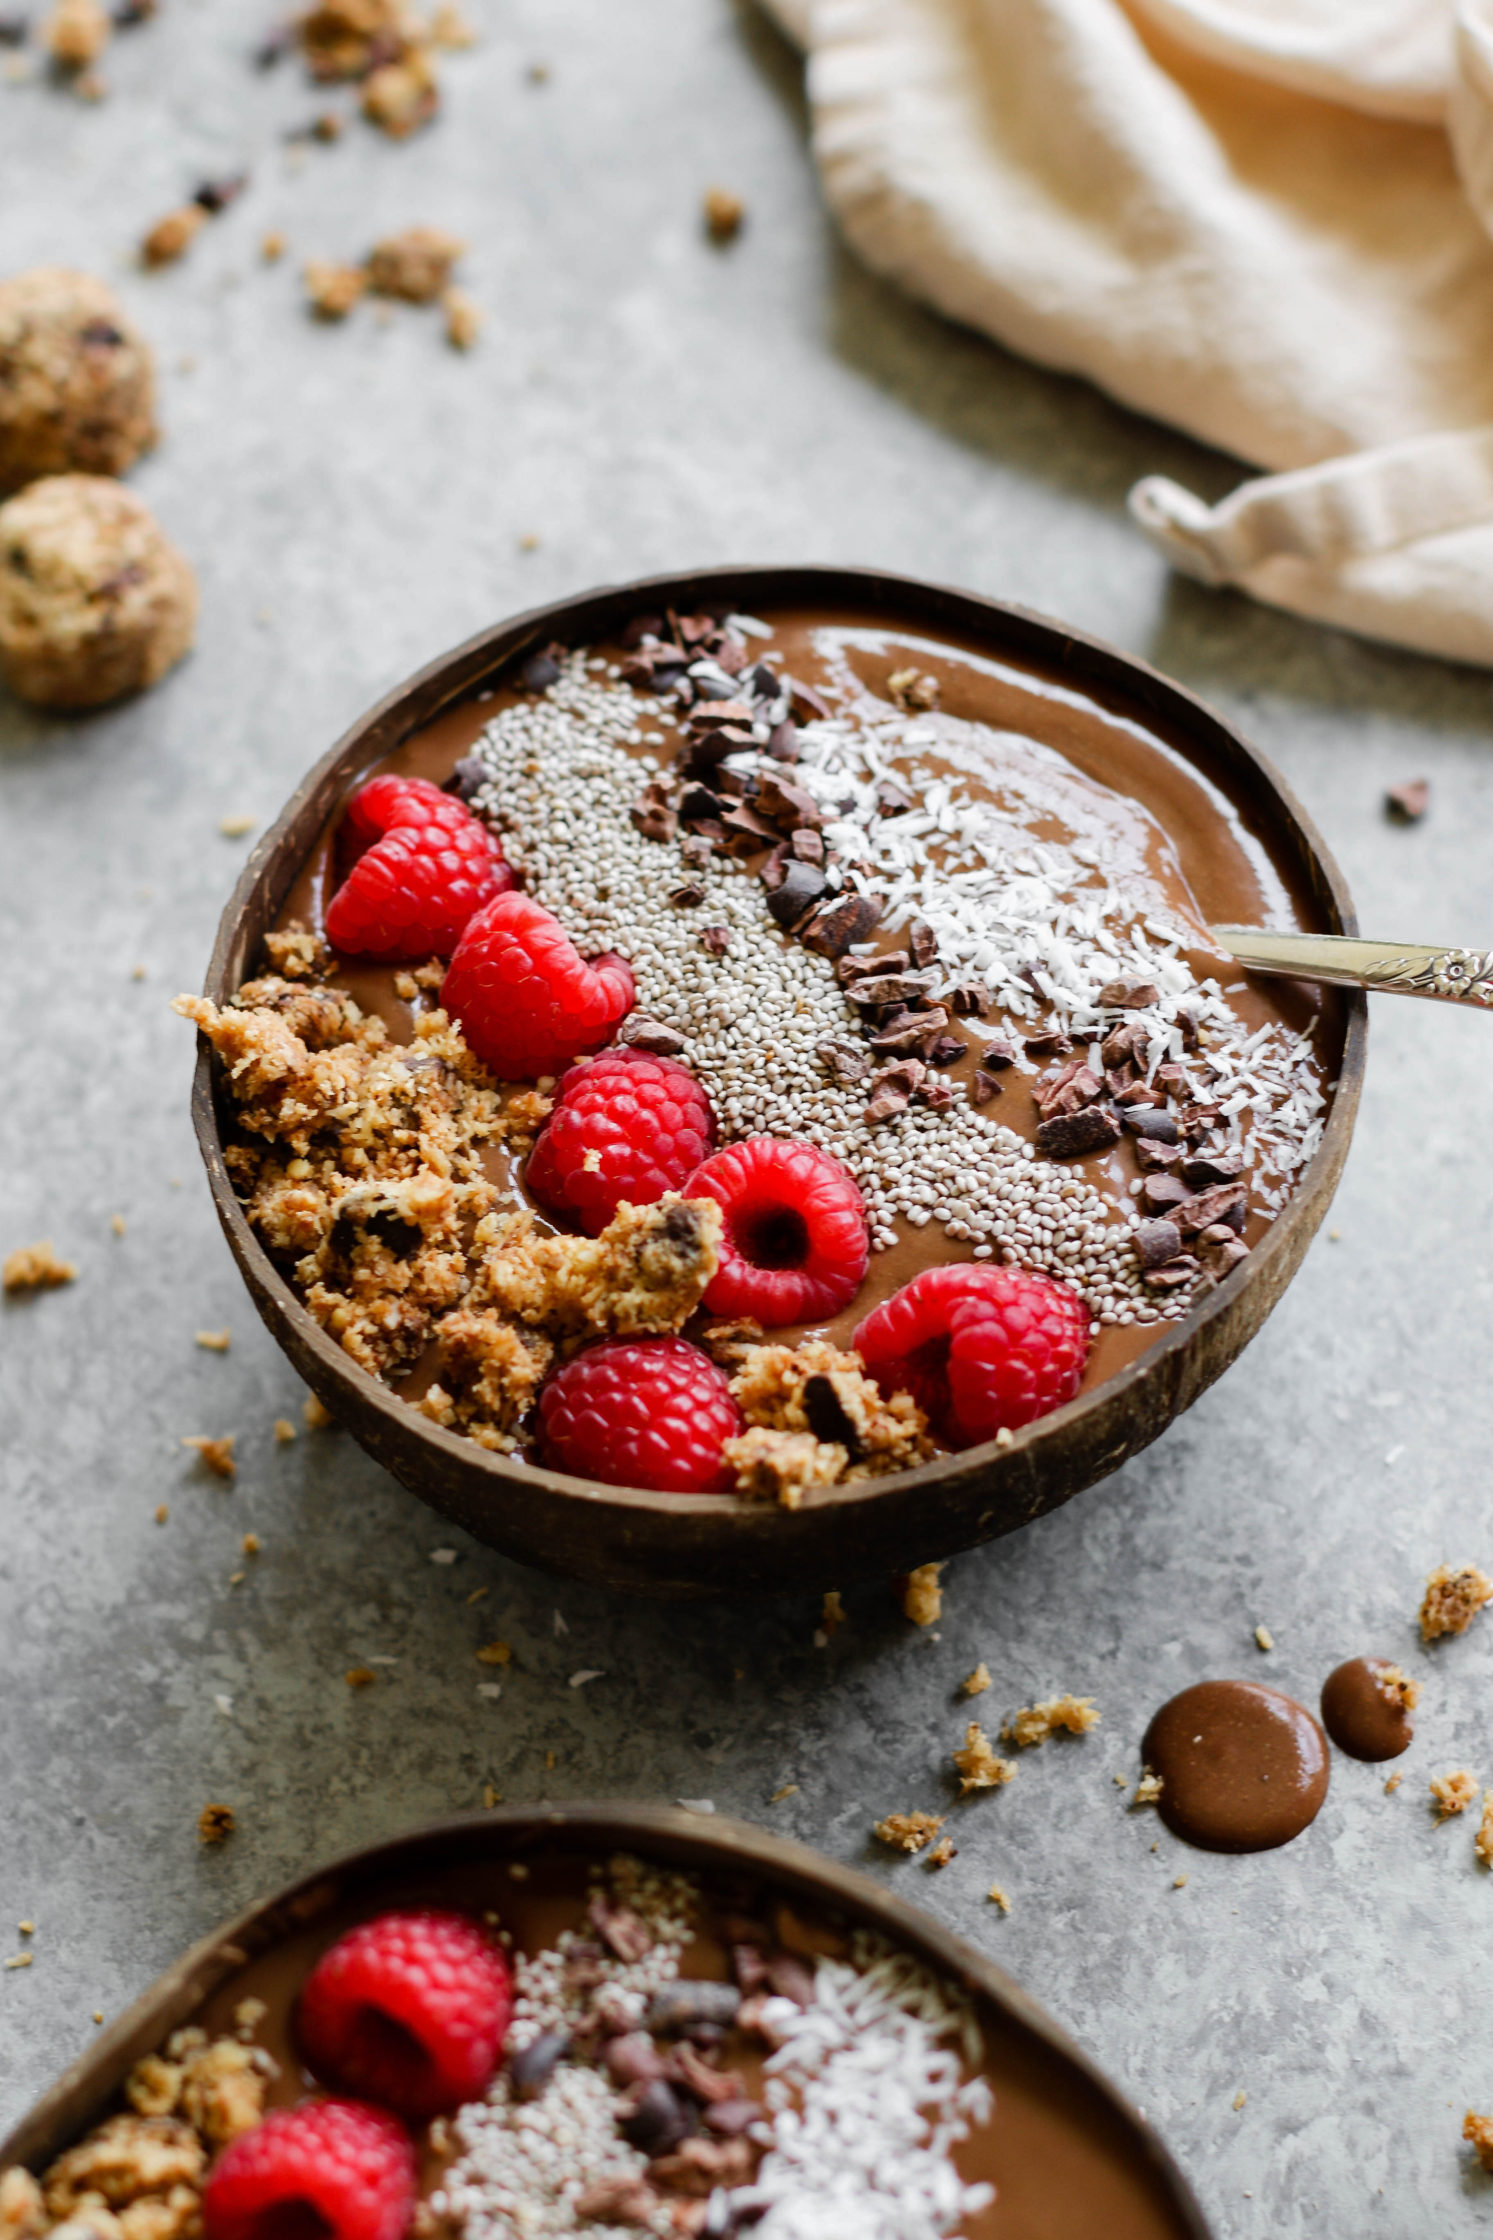 Chocolate Chia Chip Yam Smoothie Bowl (Fruit-Free)